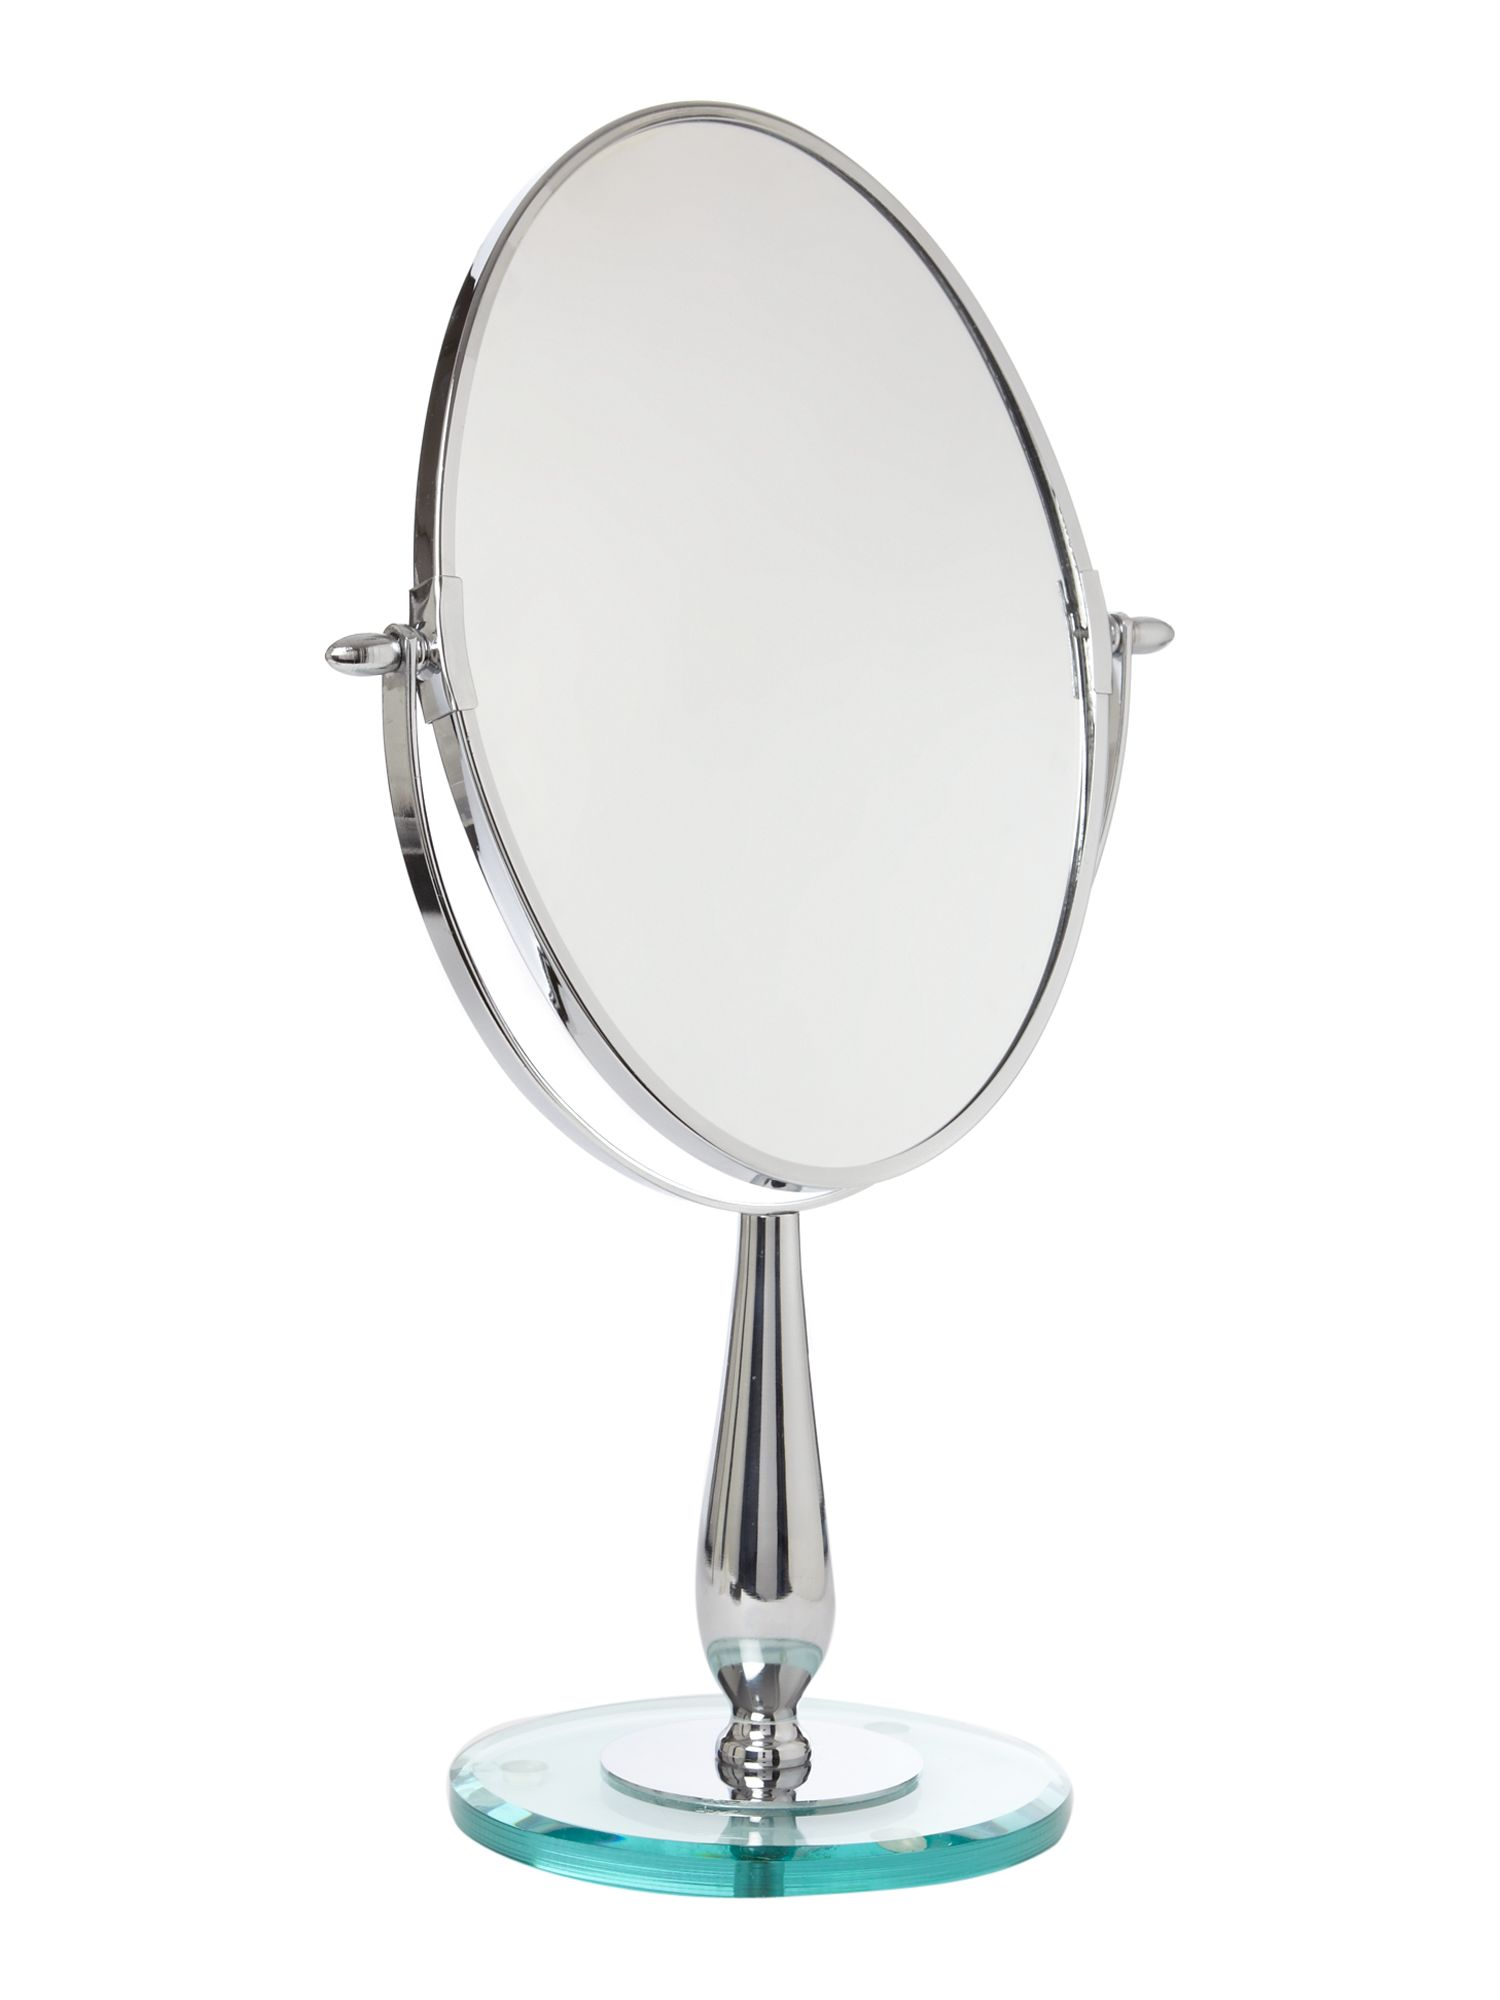 Linea Large Oval Mirror With Glass Base Oval Bathroom Mirrors